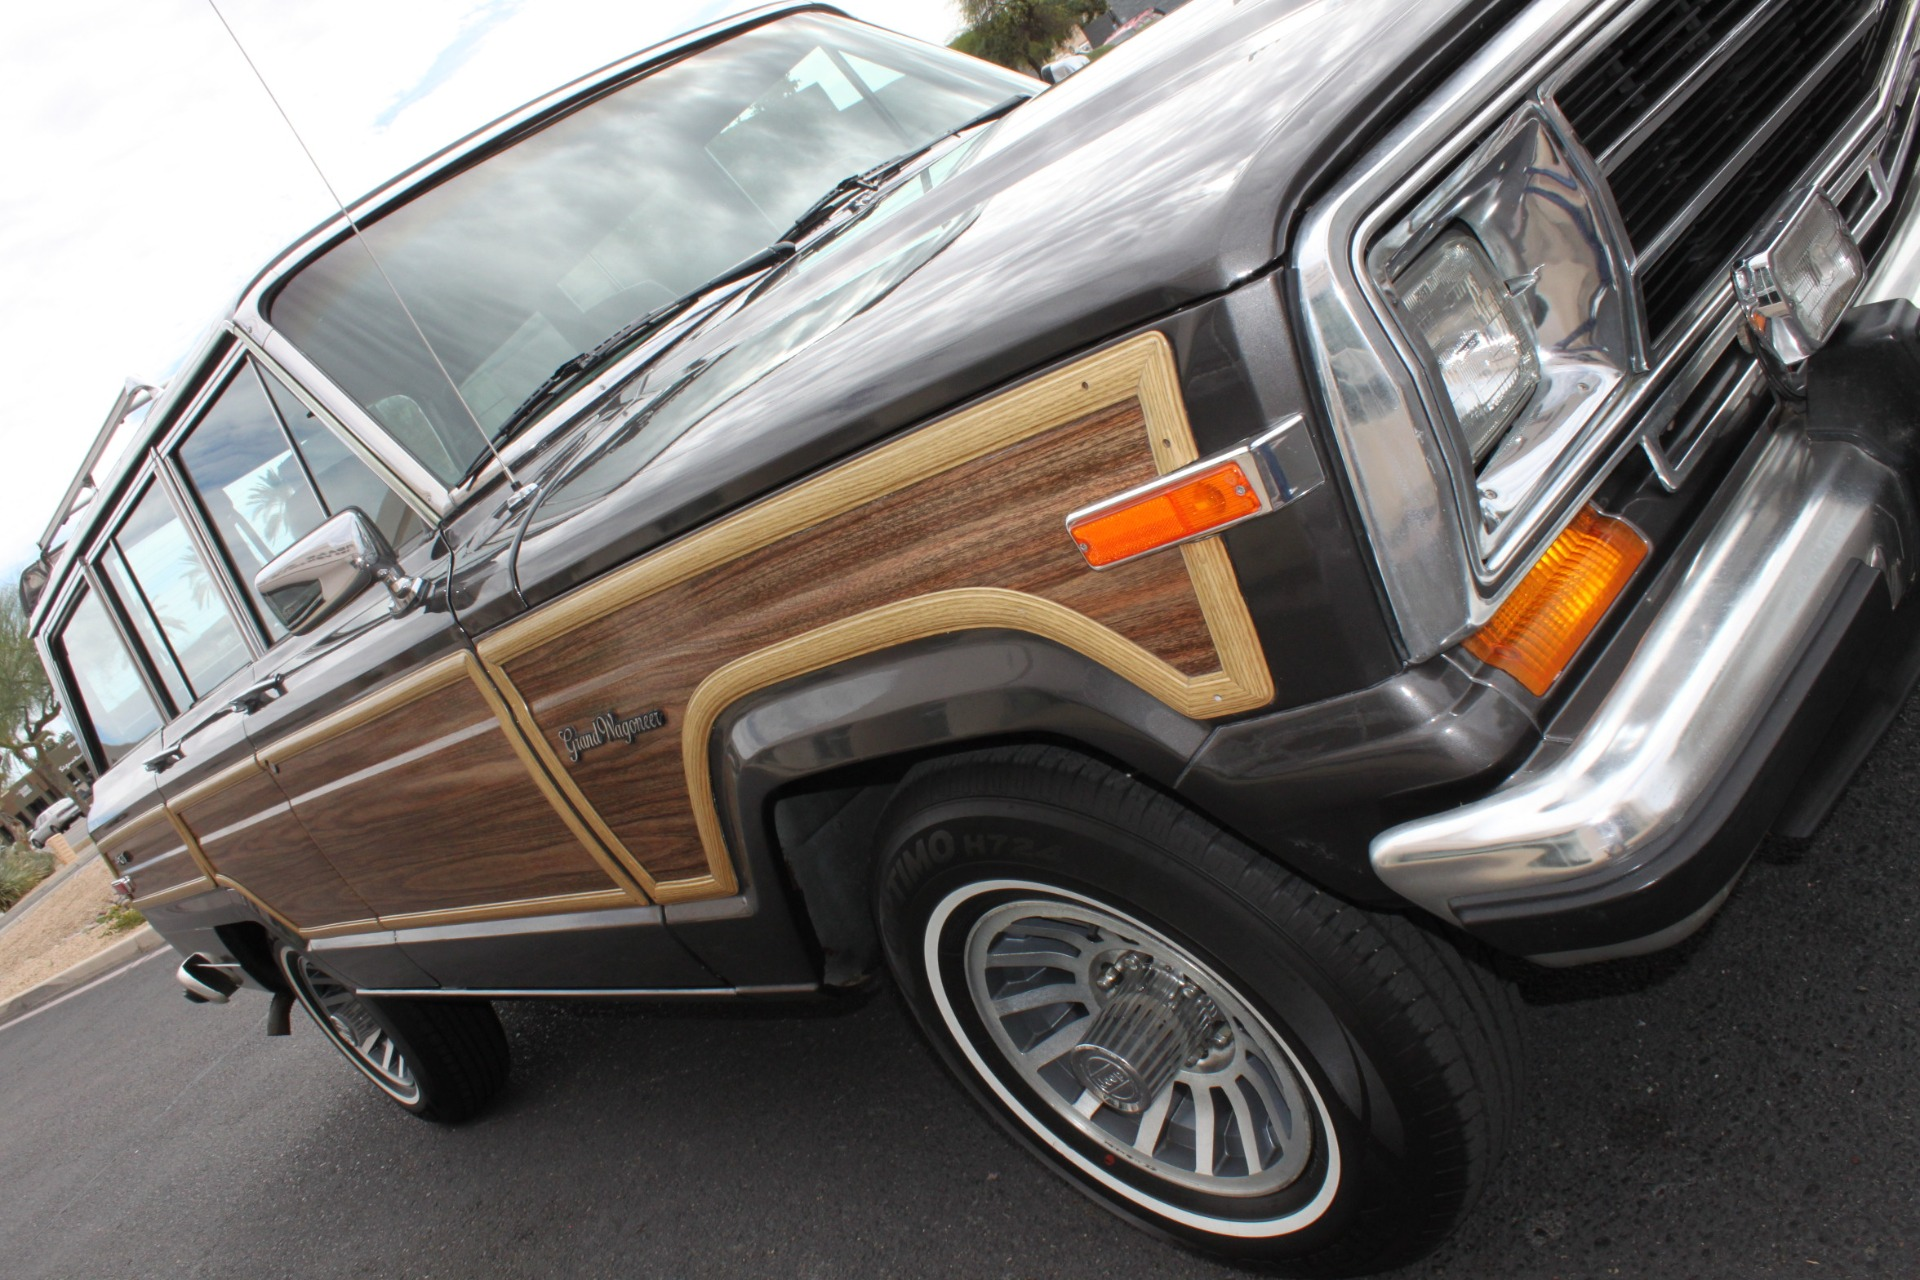 Used-1989-Jeep-Grand-Wagoneer-4X4-Grand-Cherokee